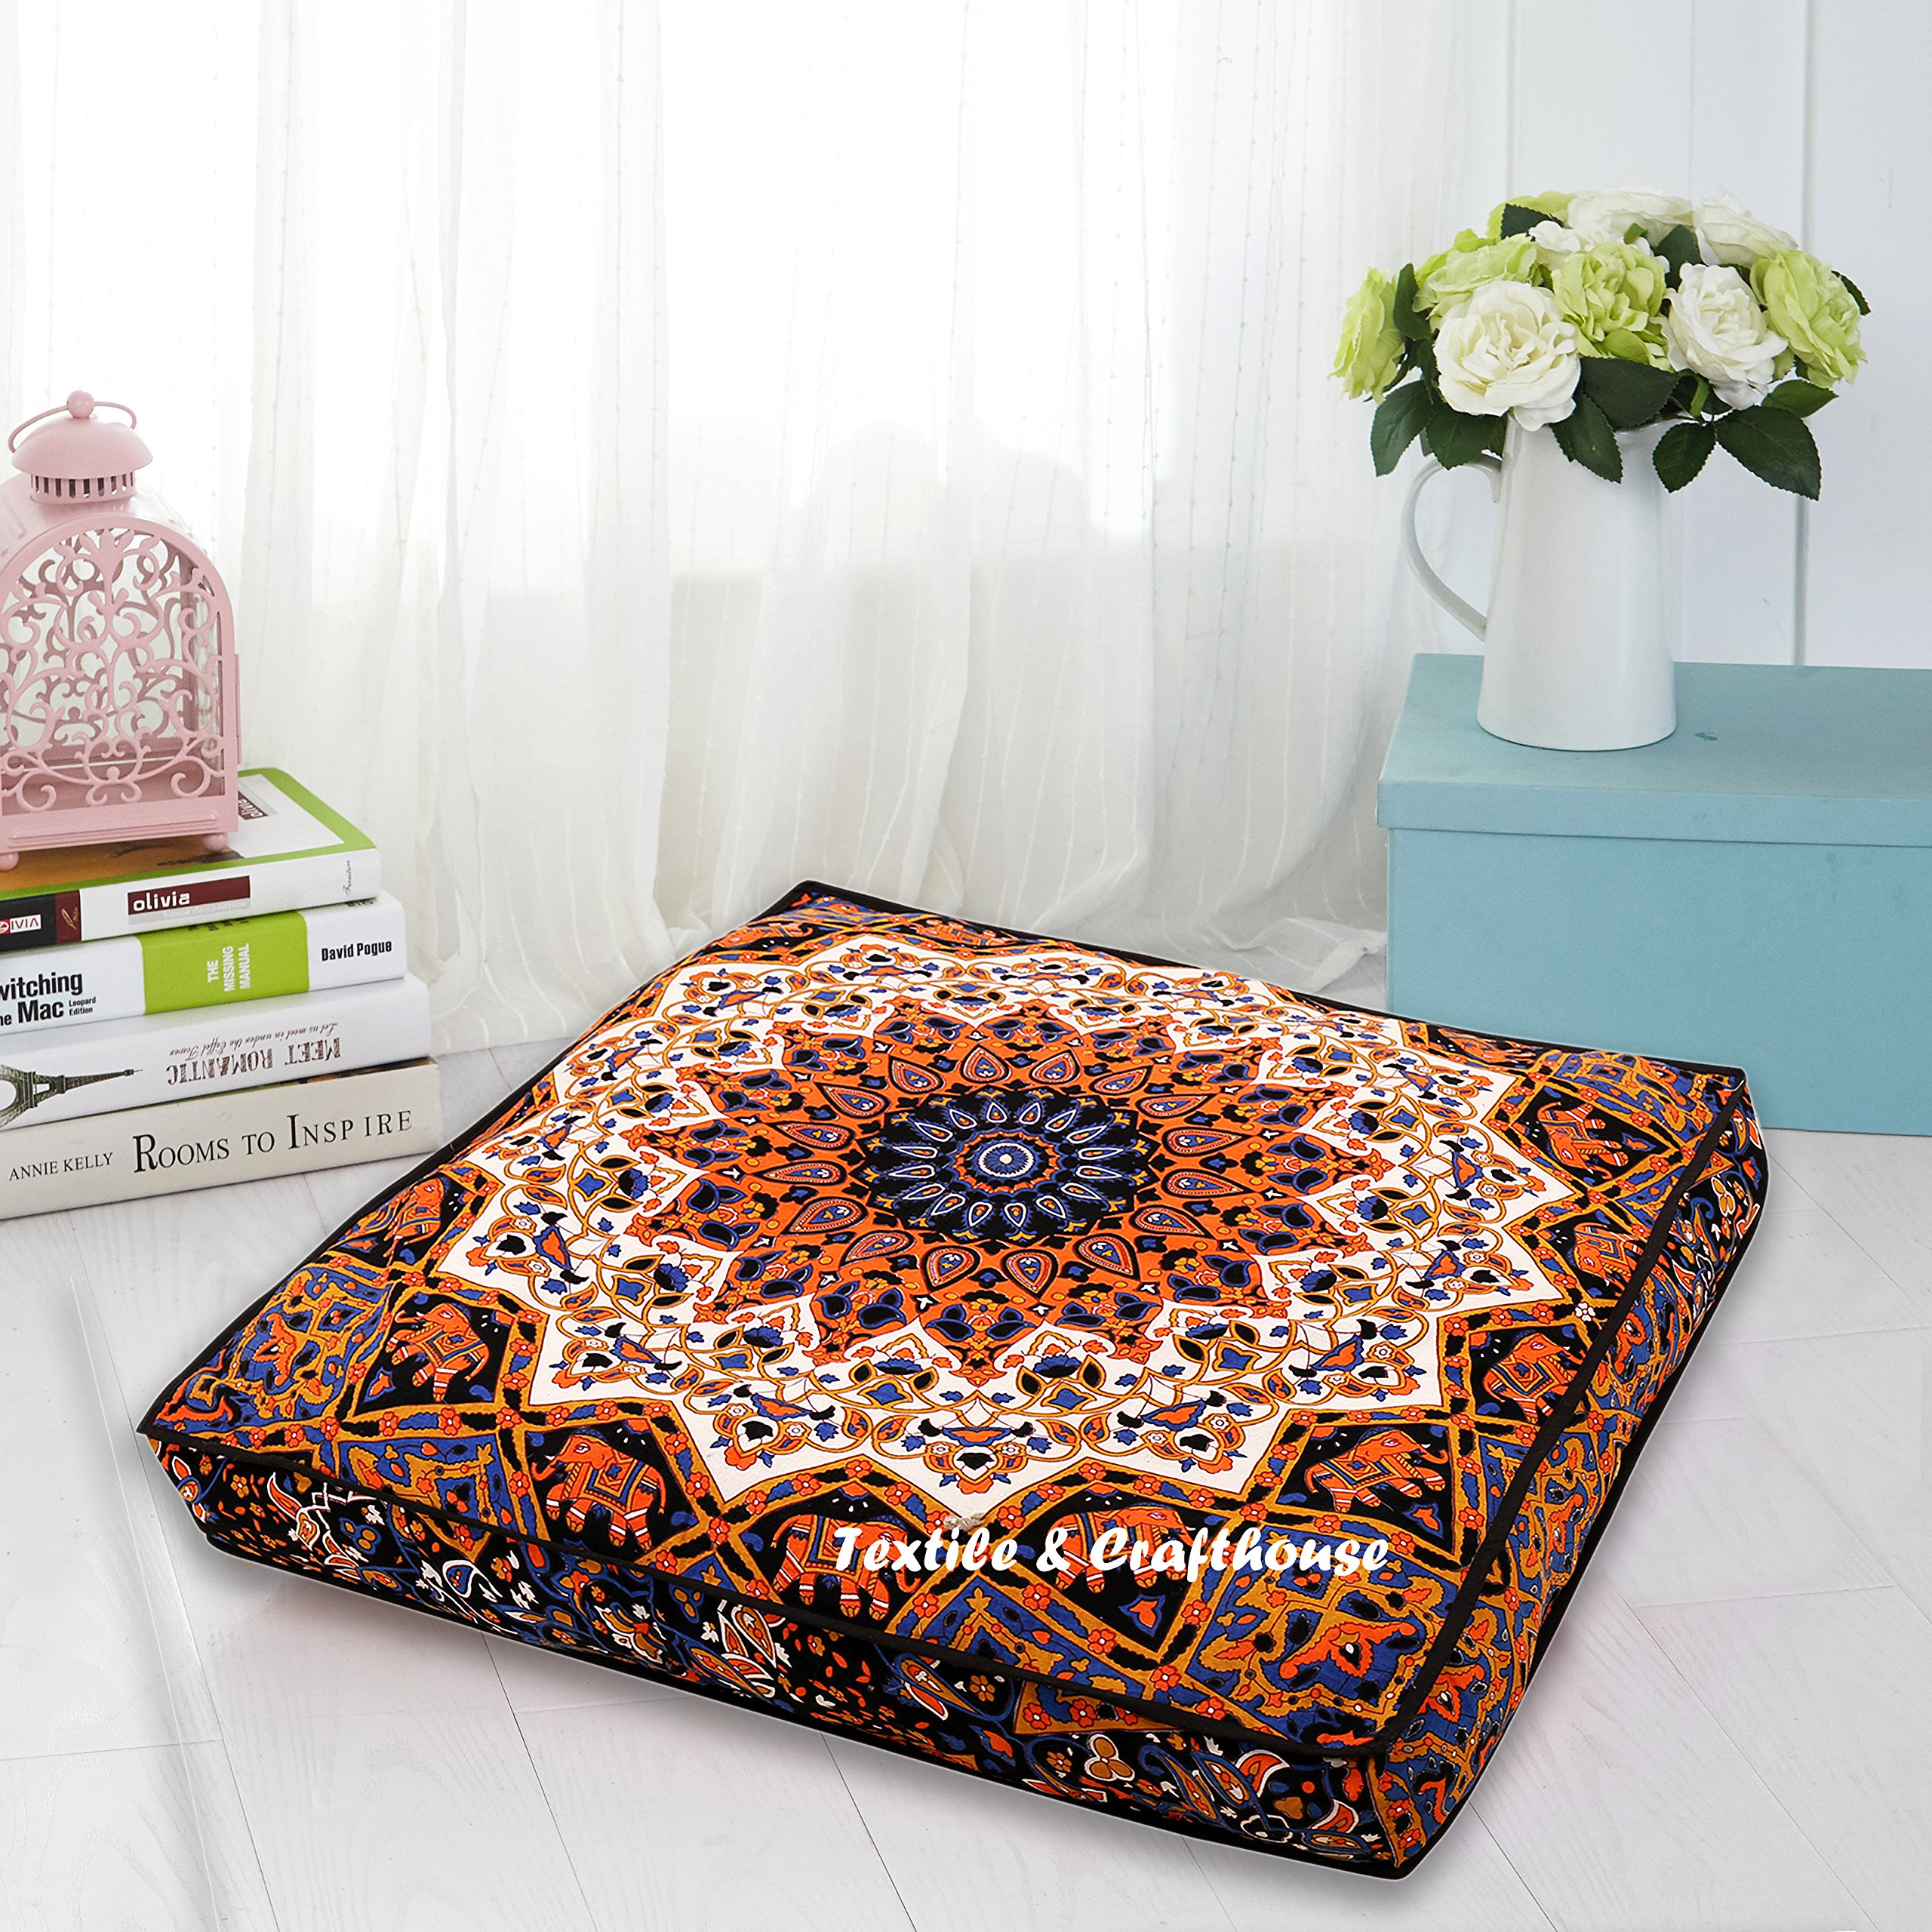 TEXTILE&CRAFT HOUSE Decorative Mandala Floor Pillow Square Cushion Cover Pouf Cover Indian Bohemian Ottoman Poufs Cover Outdoor Cushion Cover Large Dog Bed 36'' (style 4)